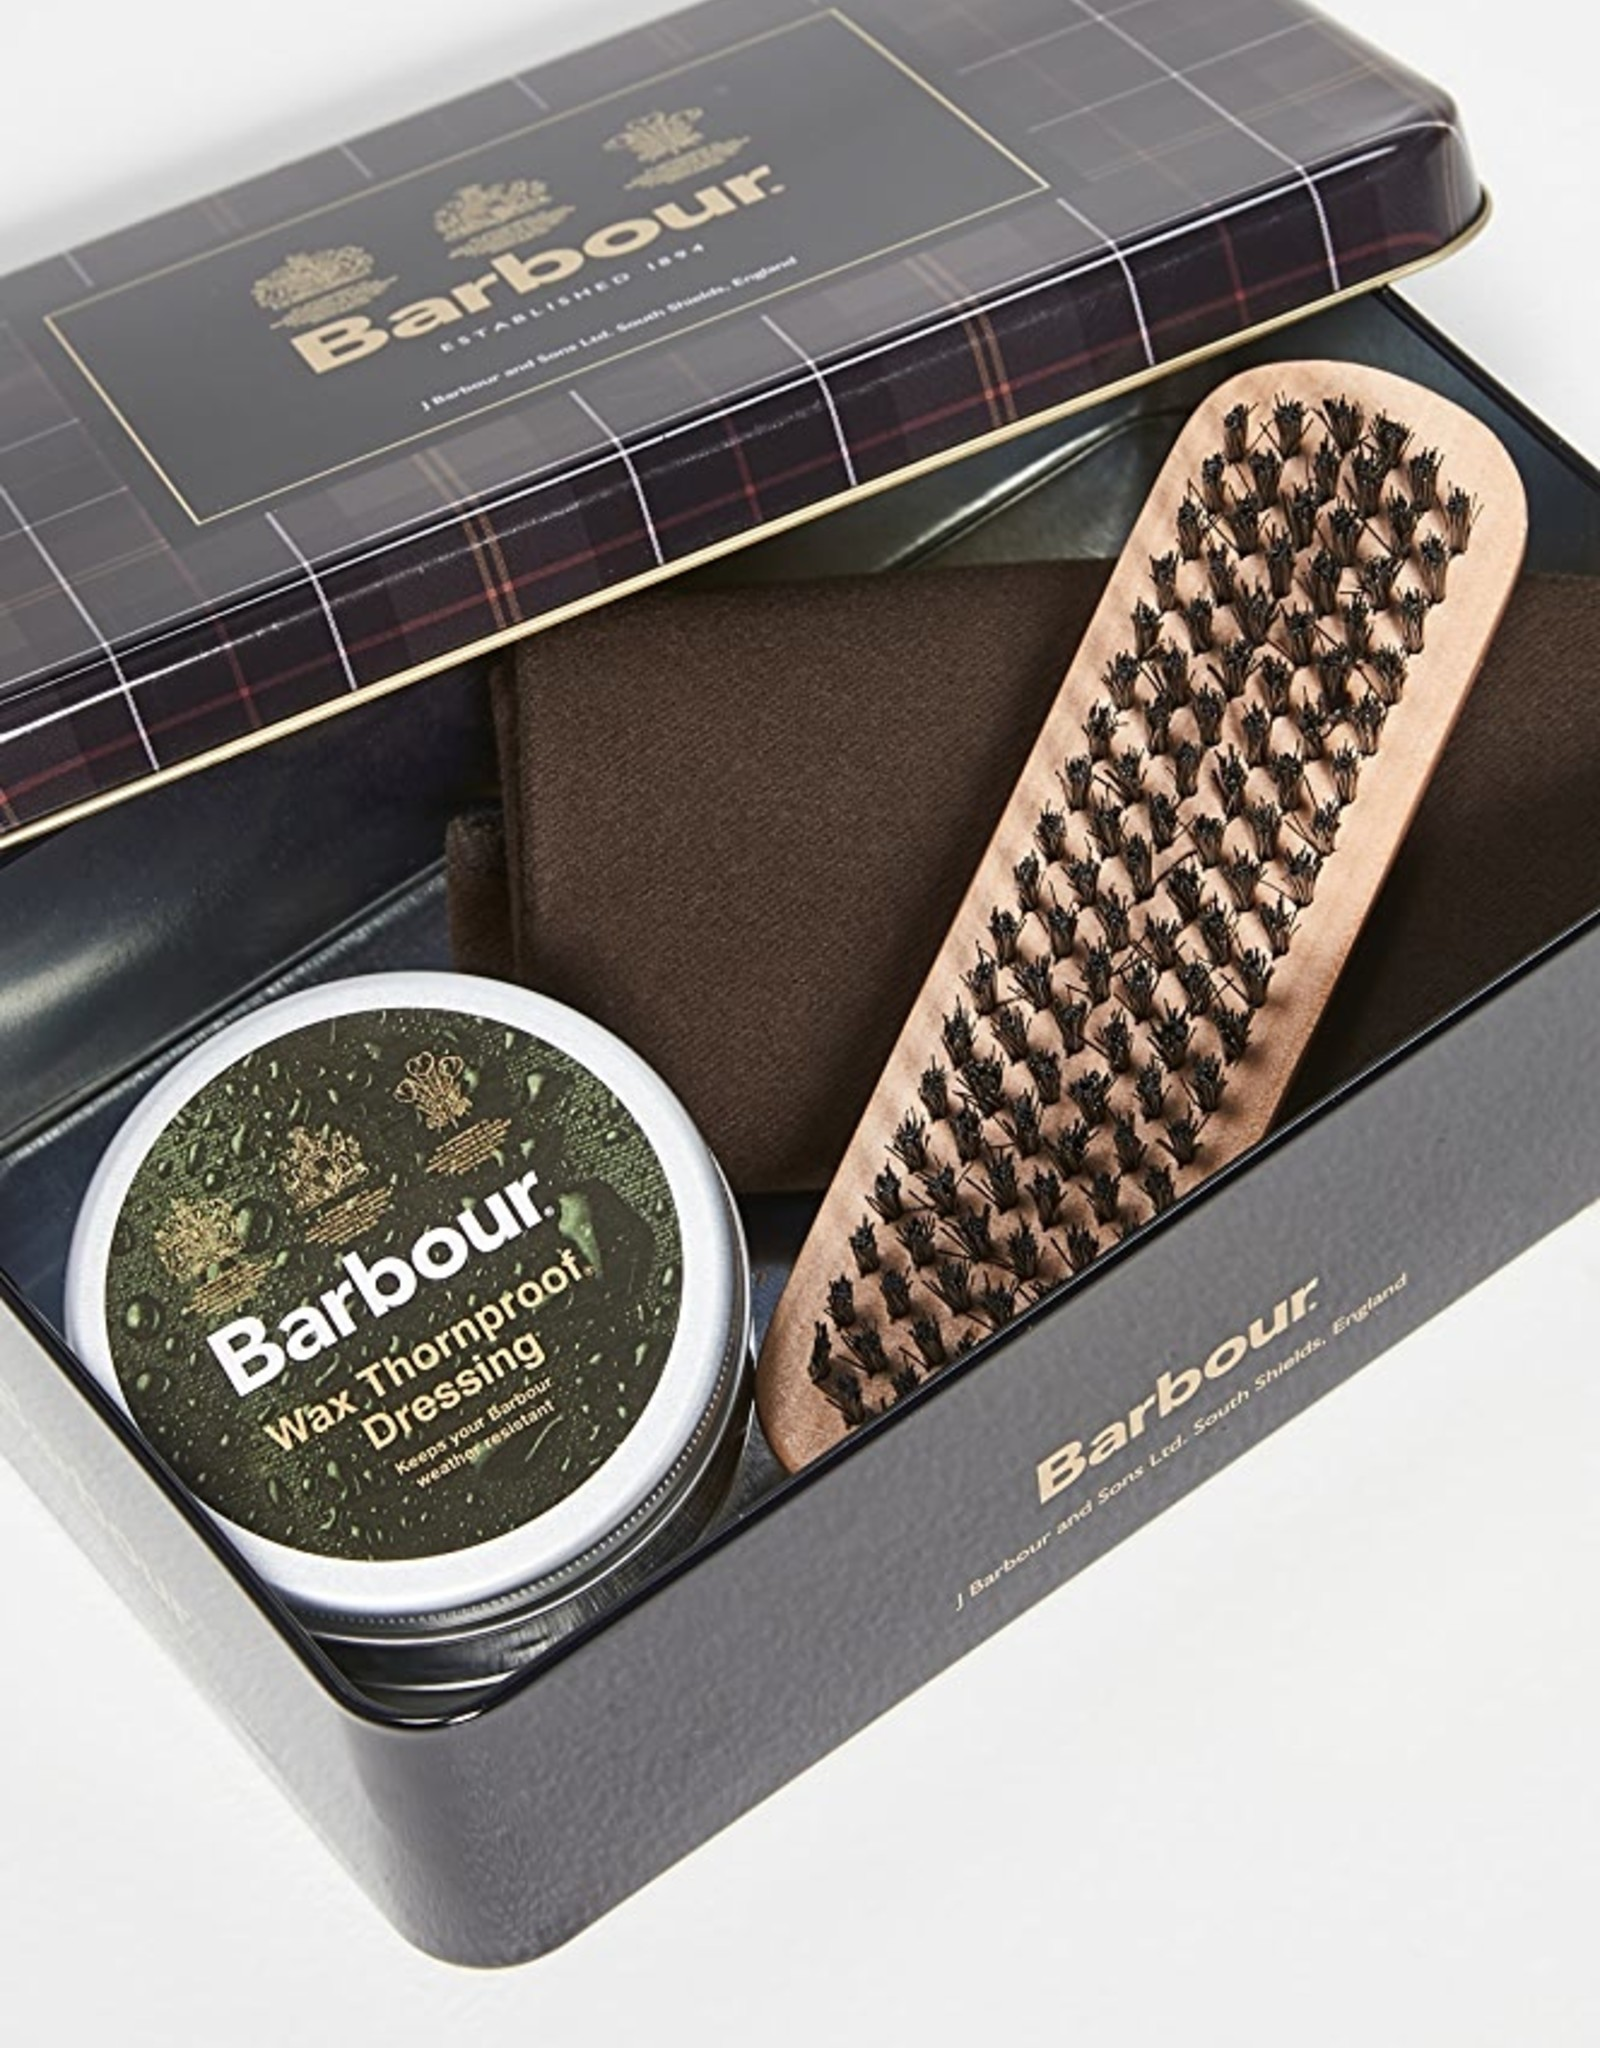 Barbour Barbour Jacket Care Kit